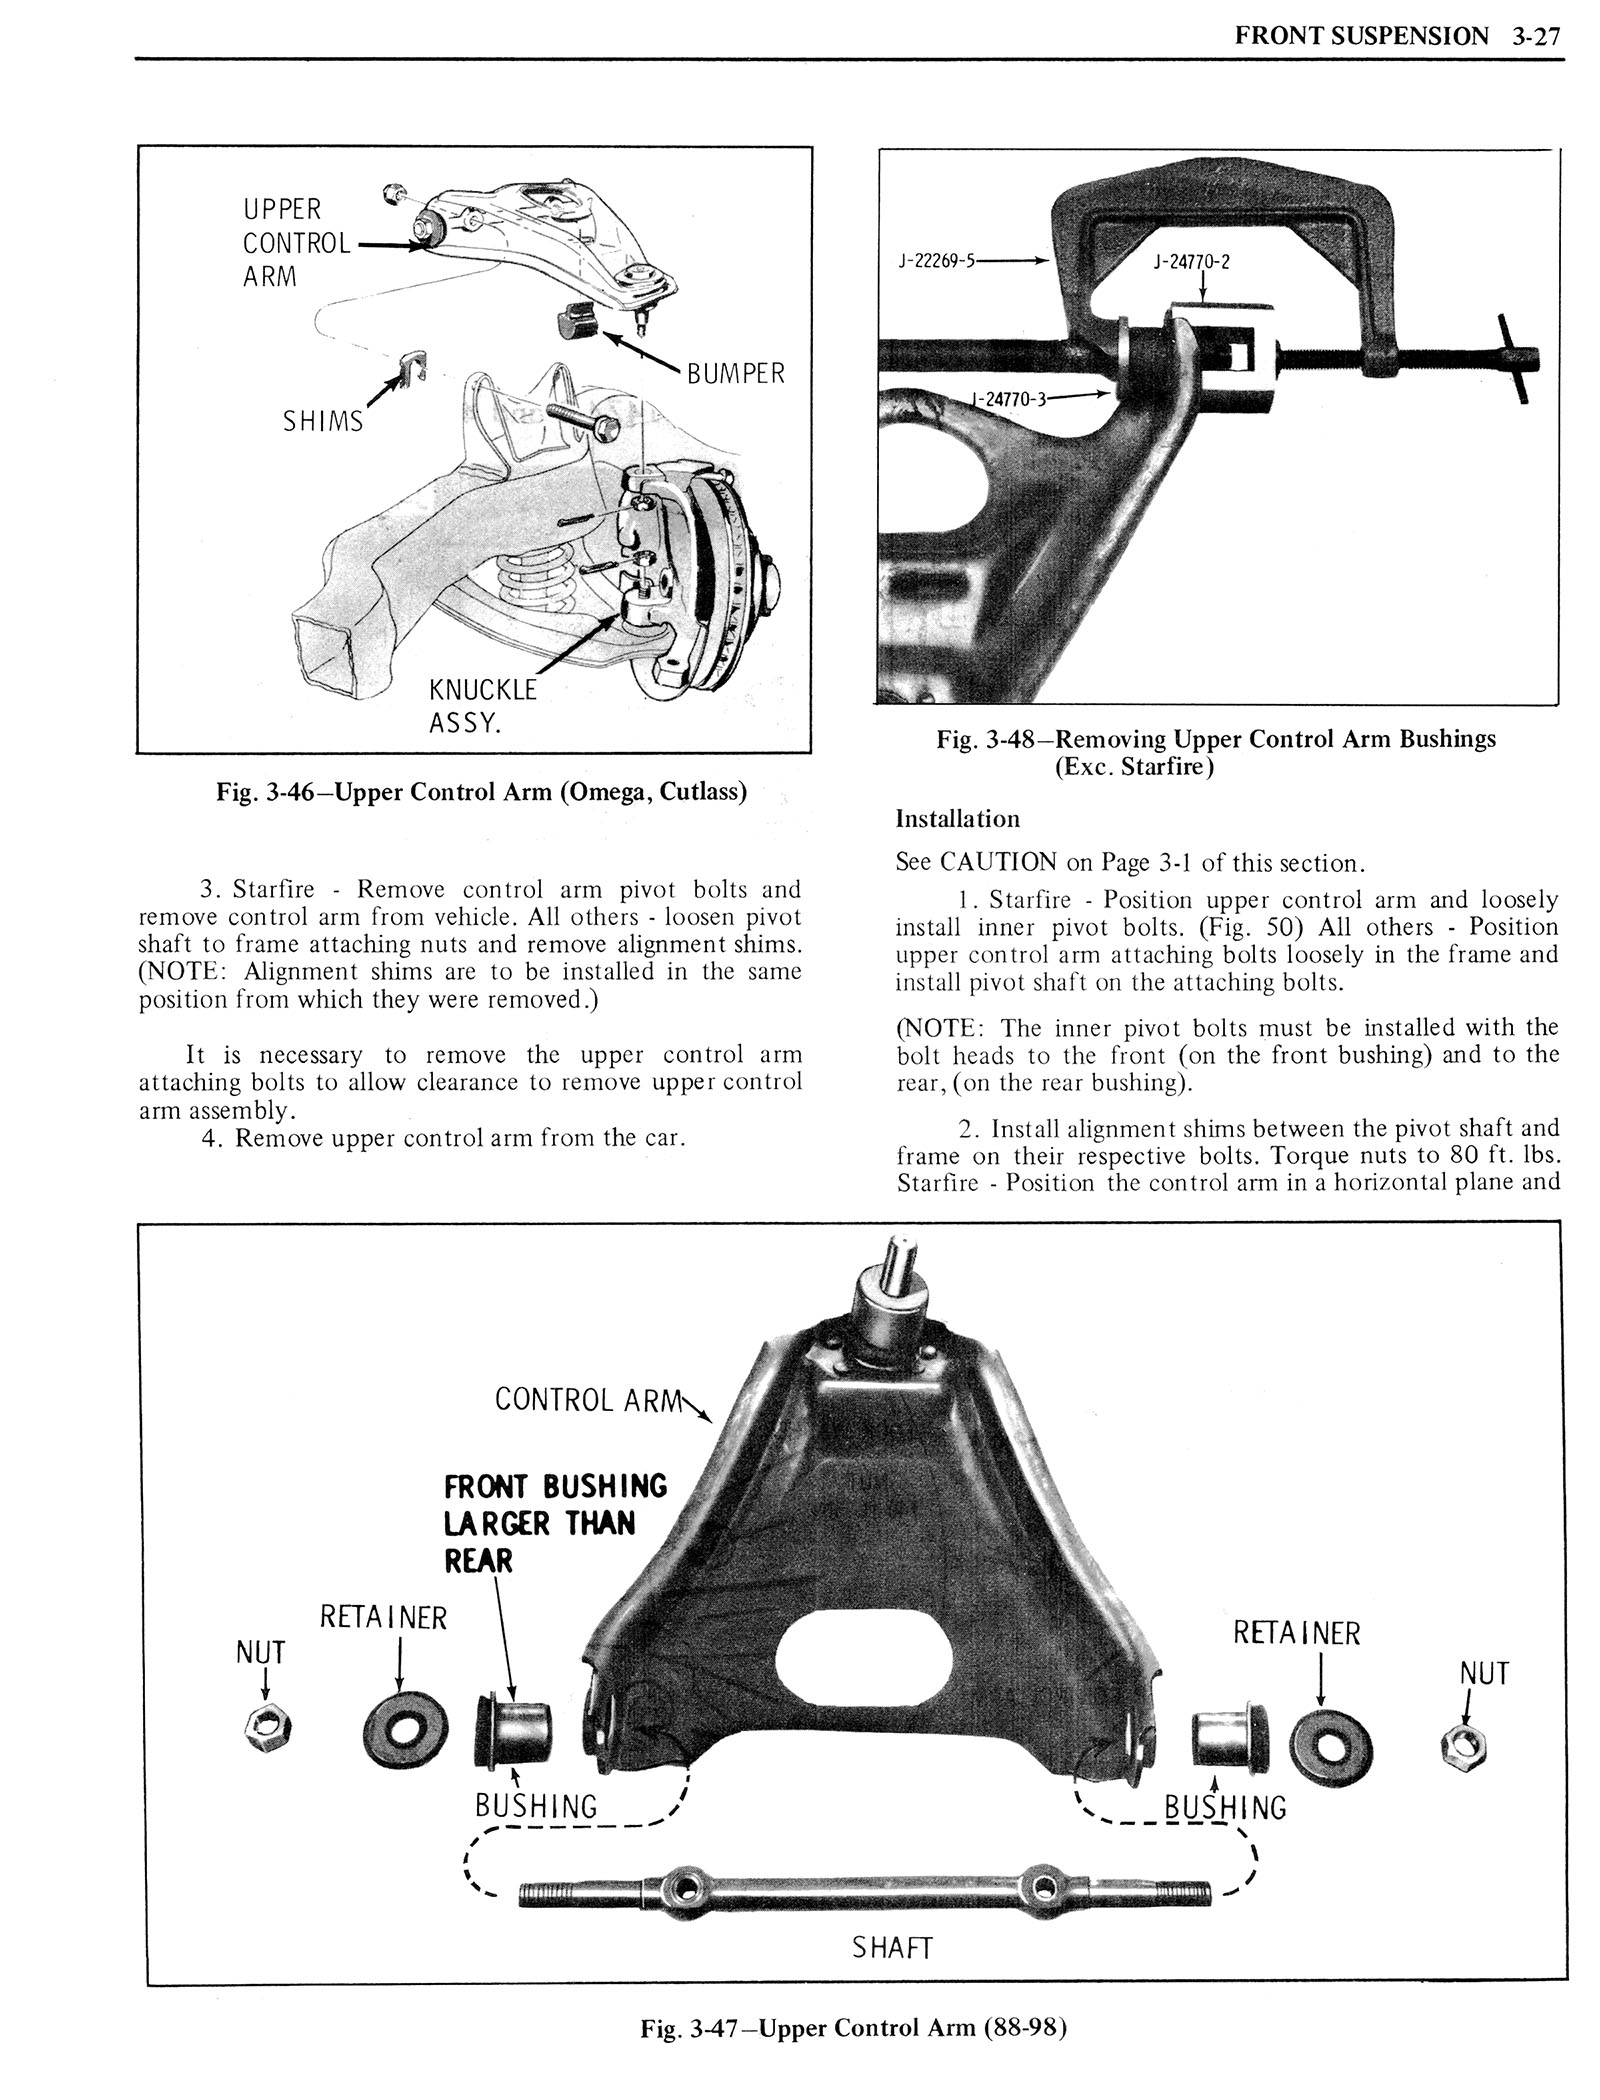 1976 Oldsmobile Service Manual page 199 of 1390